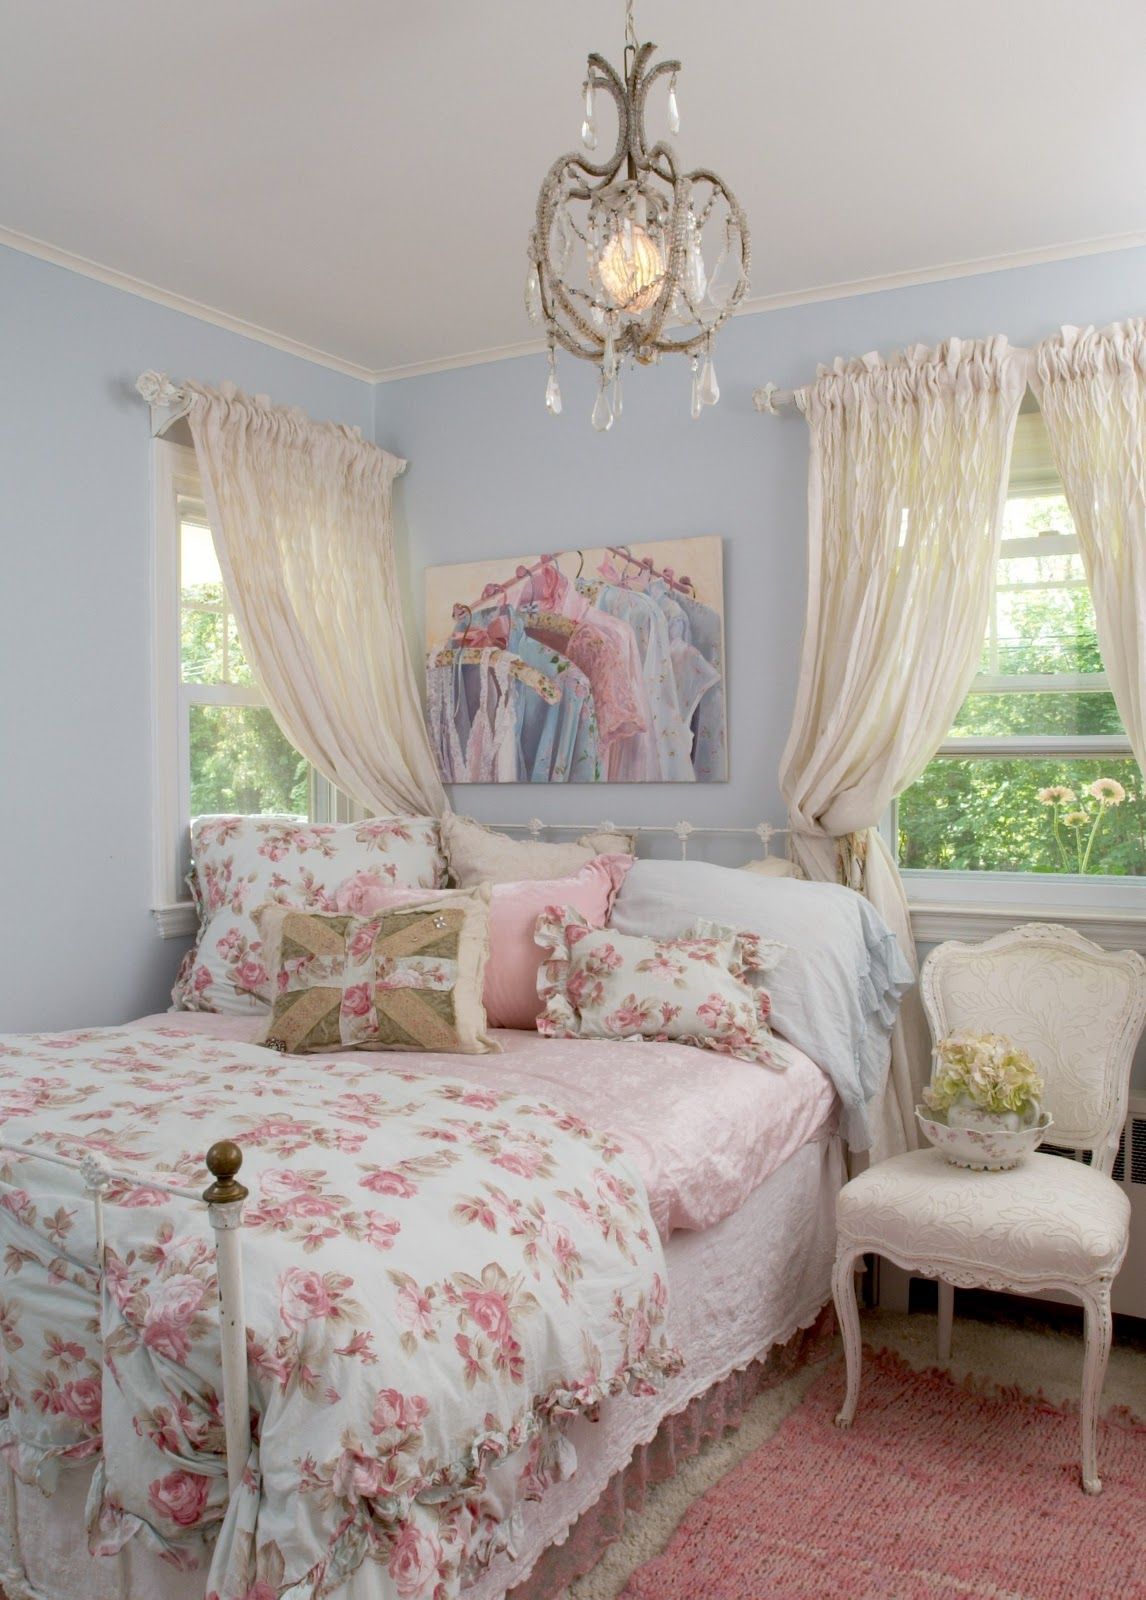 Shabby Bedroom Im Not Much For The Current Union Jack Trend But Boy Do I Love